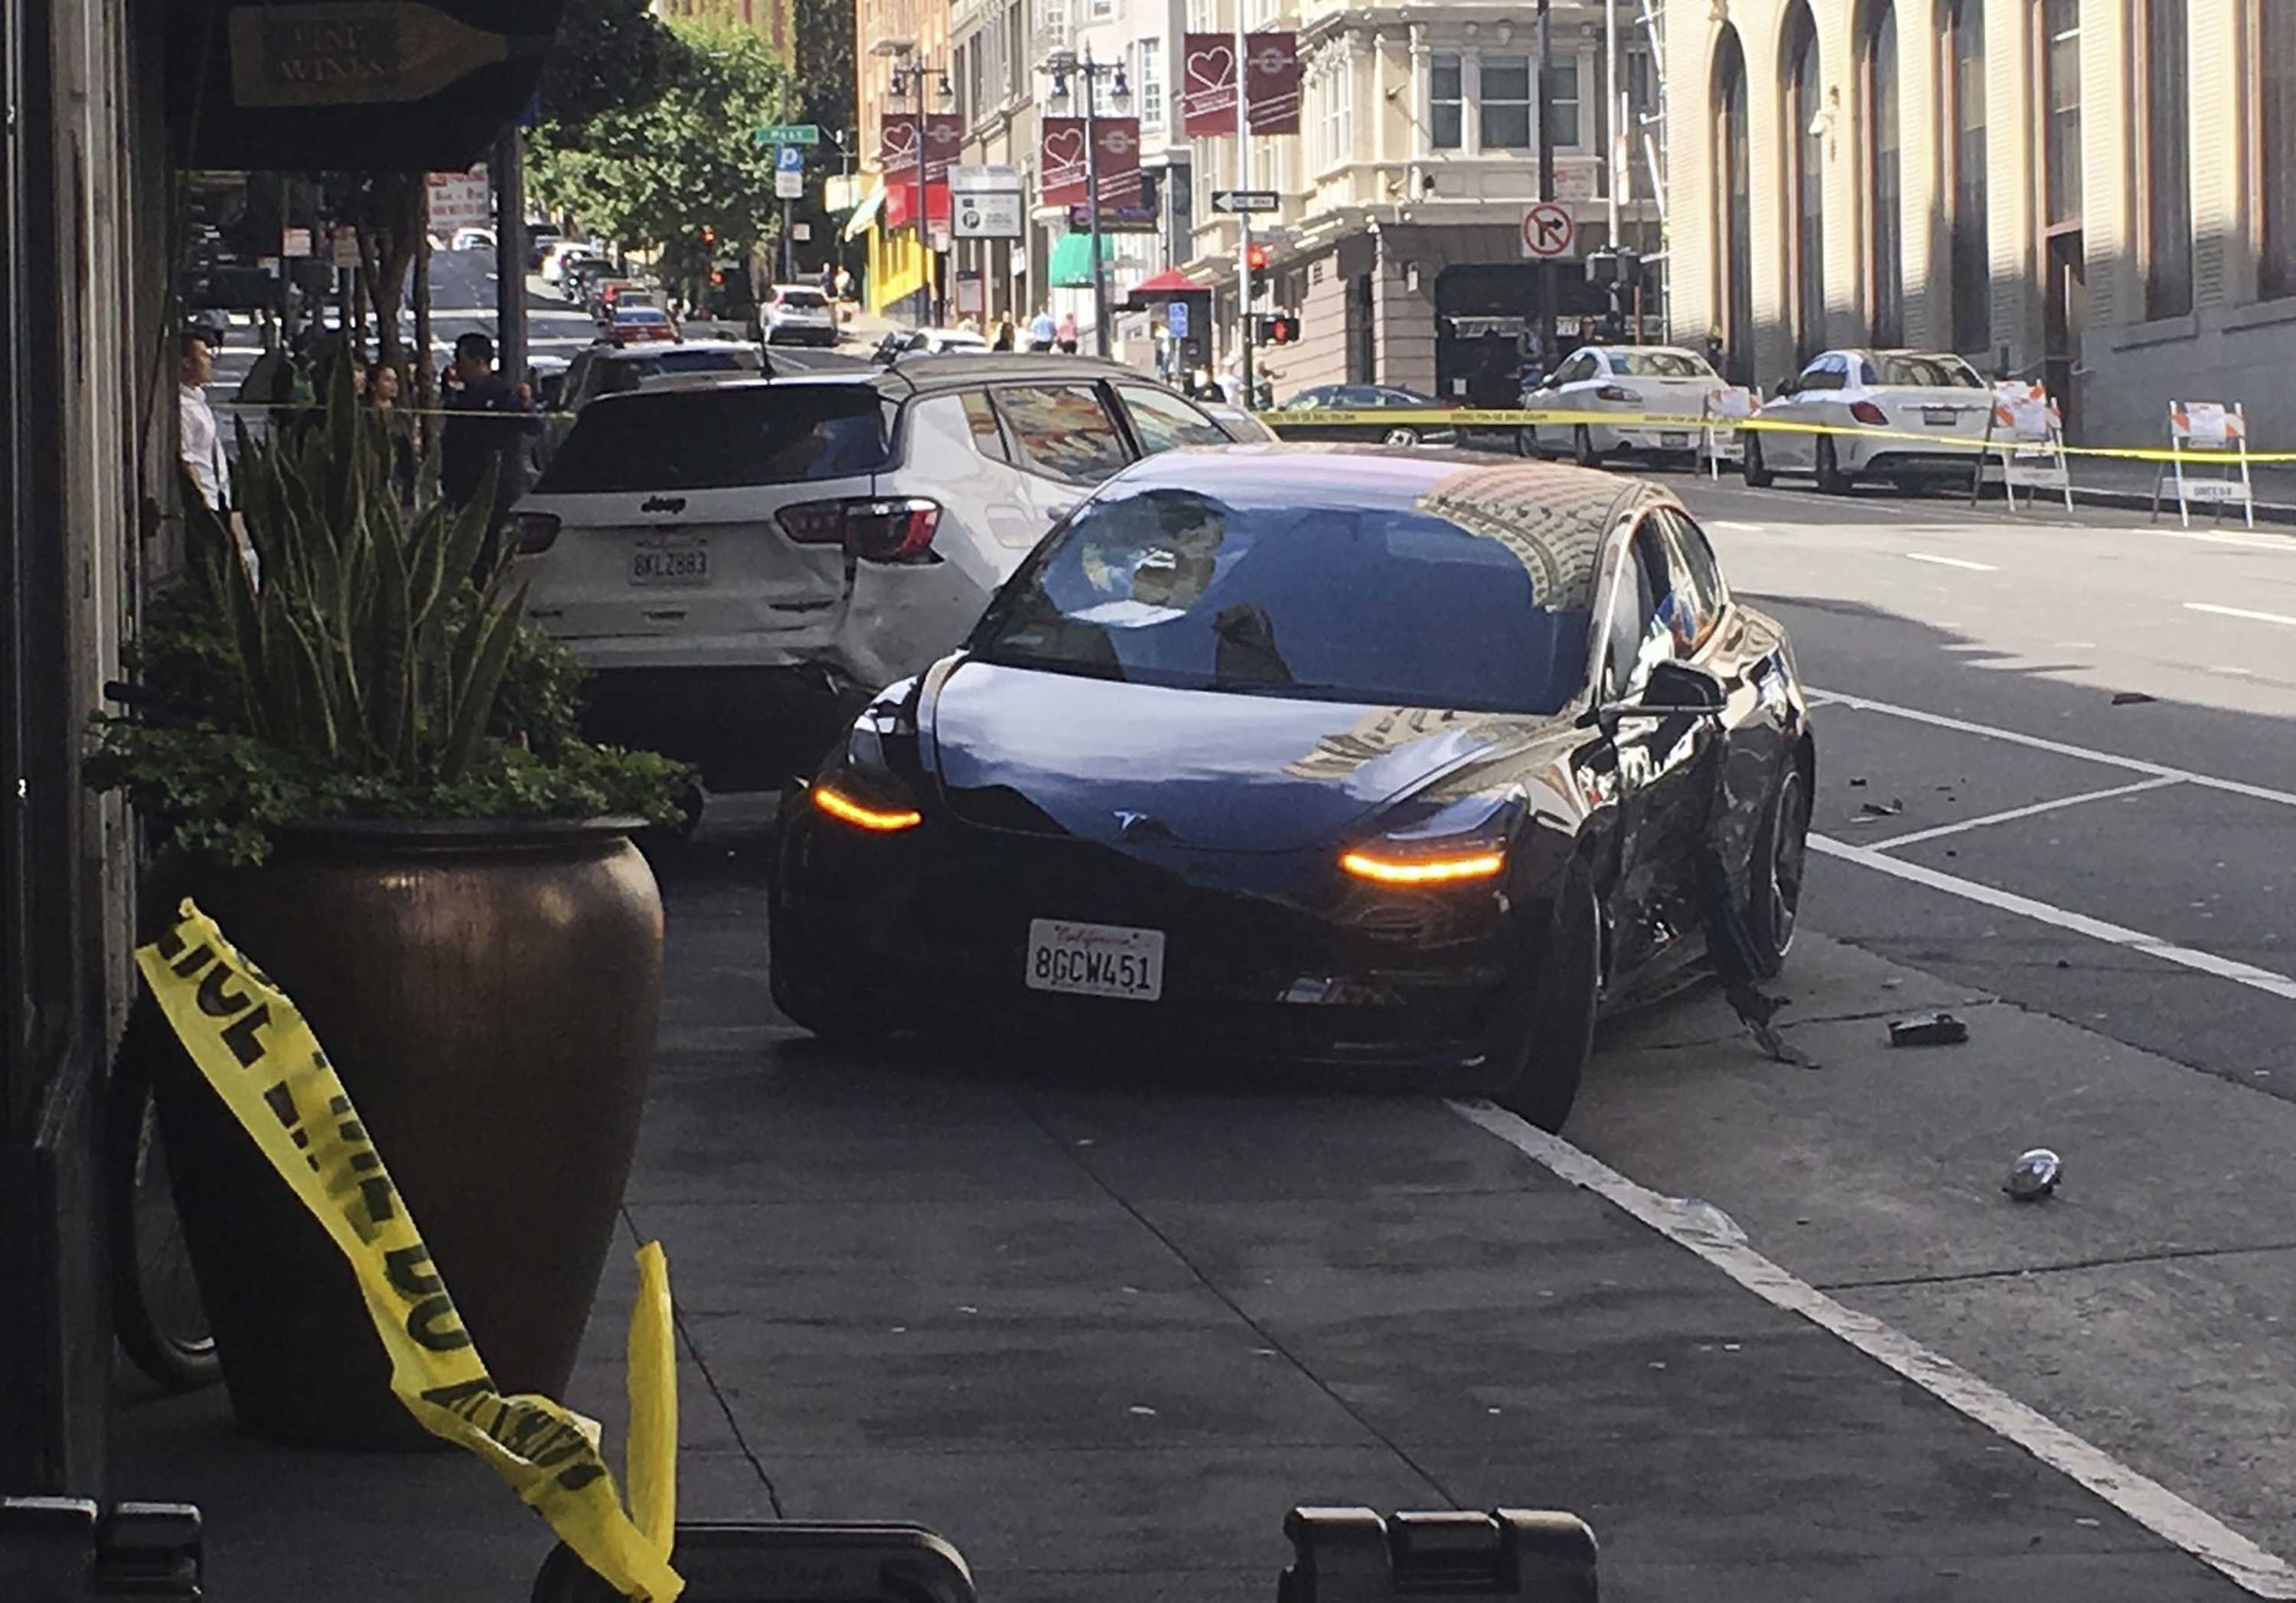 Police investigate if crashed car was partially self-driving